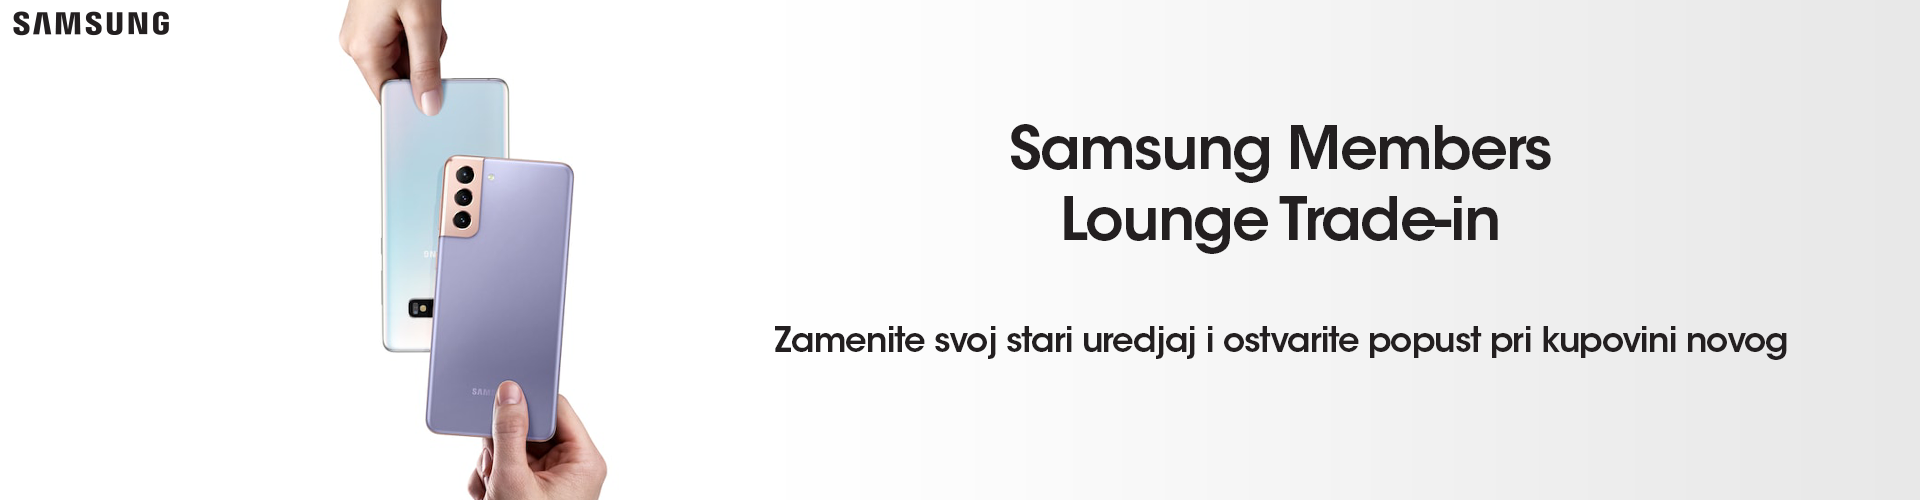 Samsung Members Lounge Trade-in